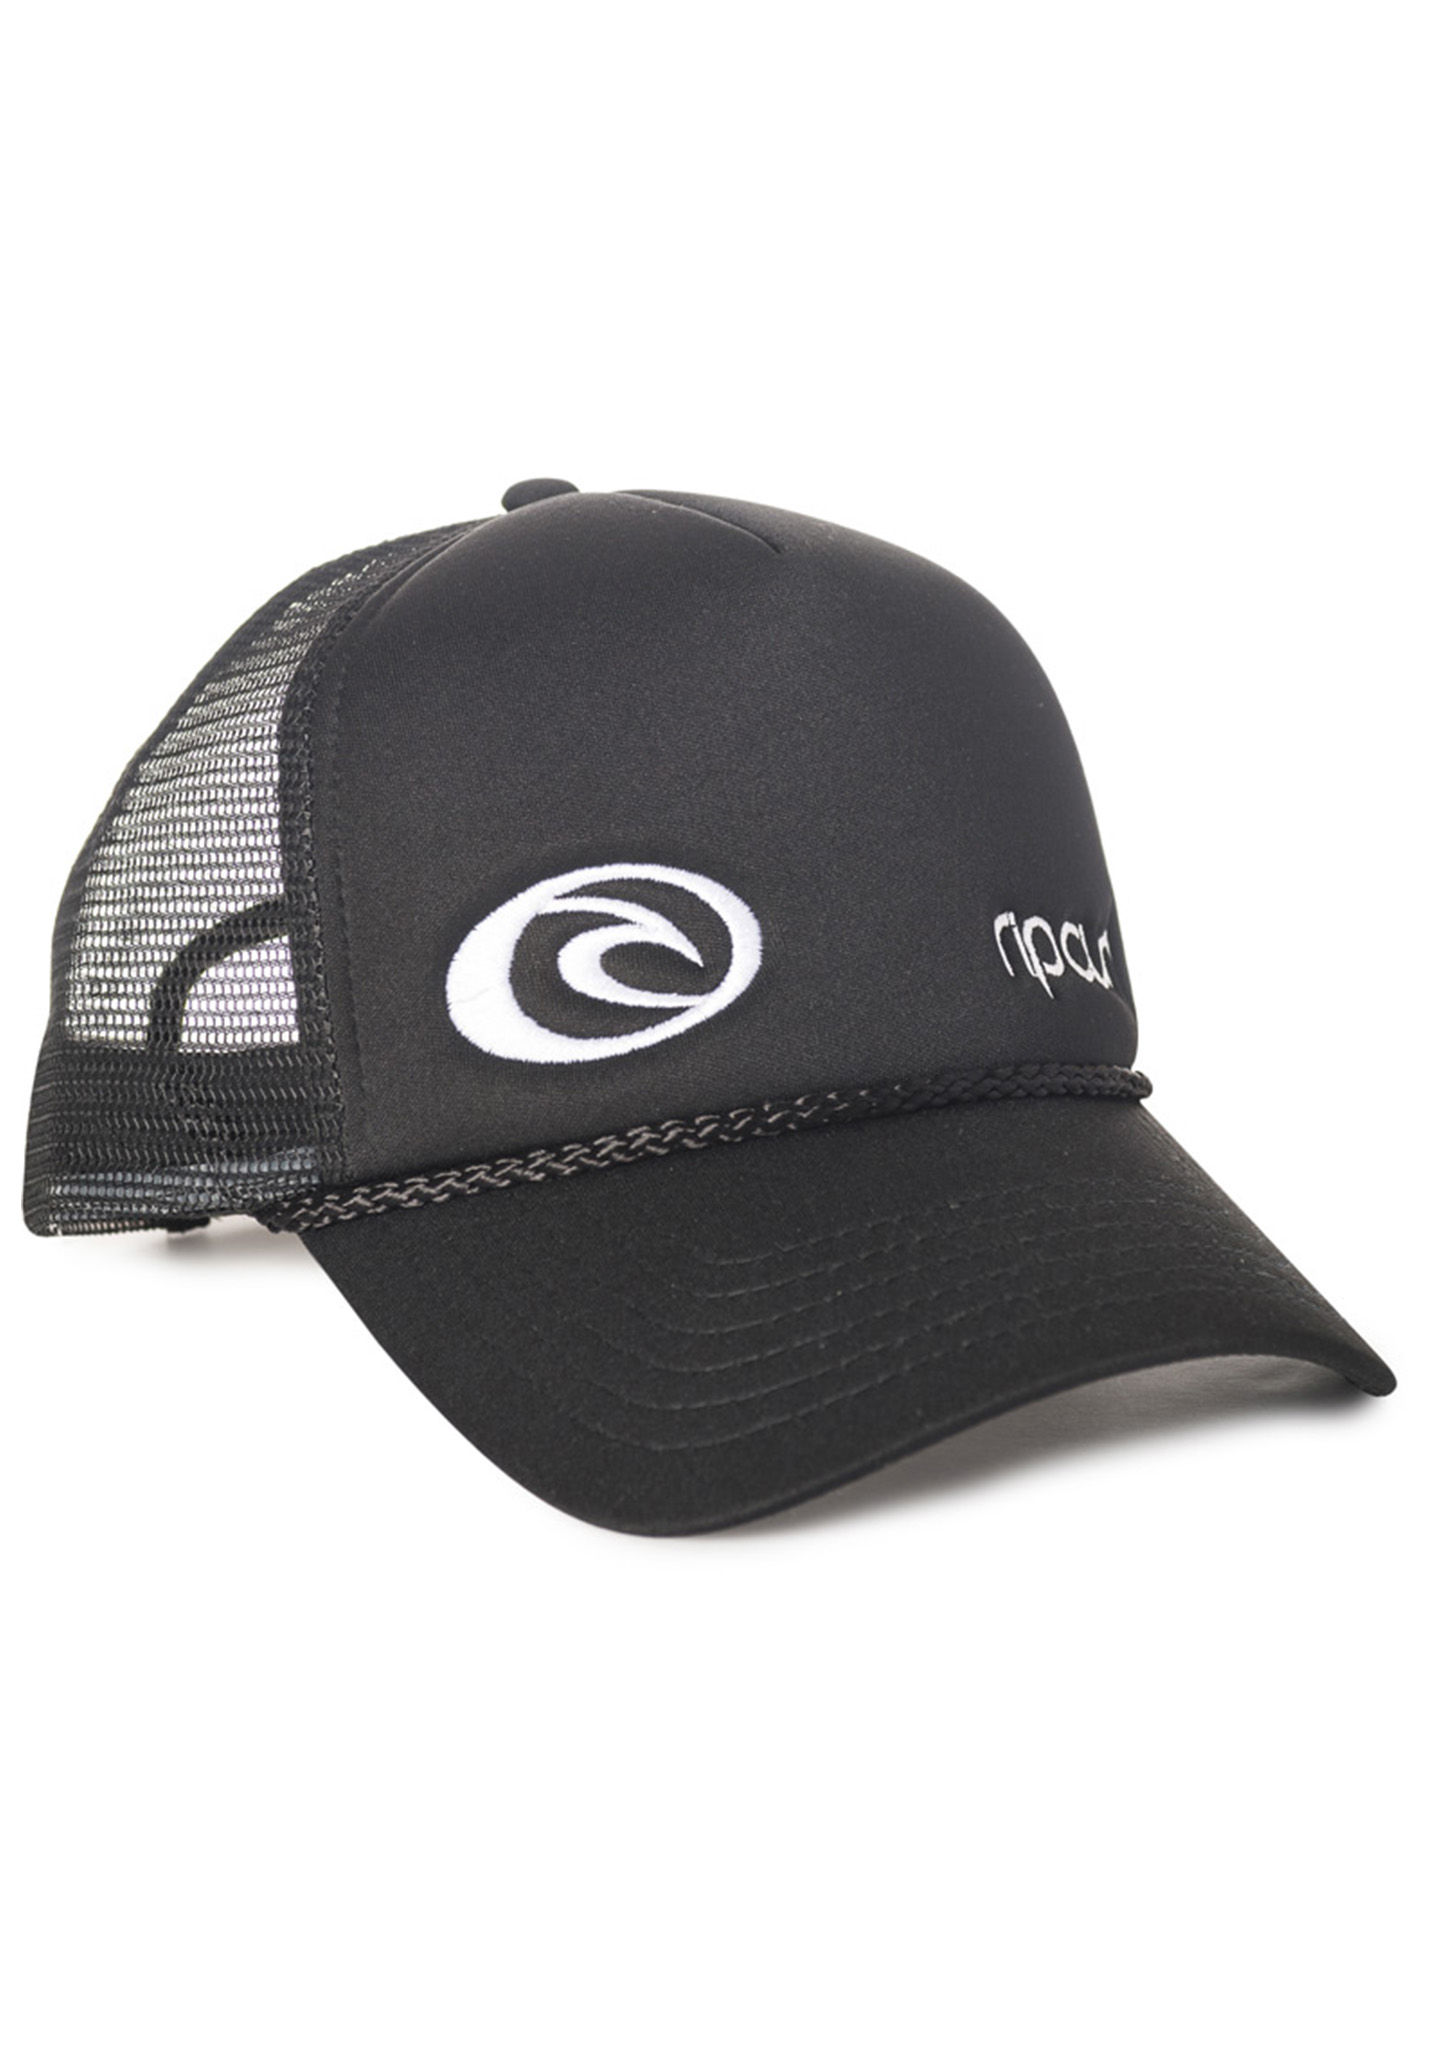 Rip Curl Hotwire Trucka - Trucker Cap for Women - Black - Planet Sports